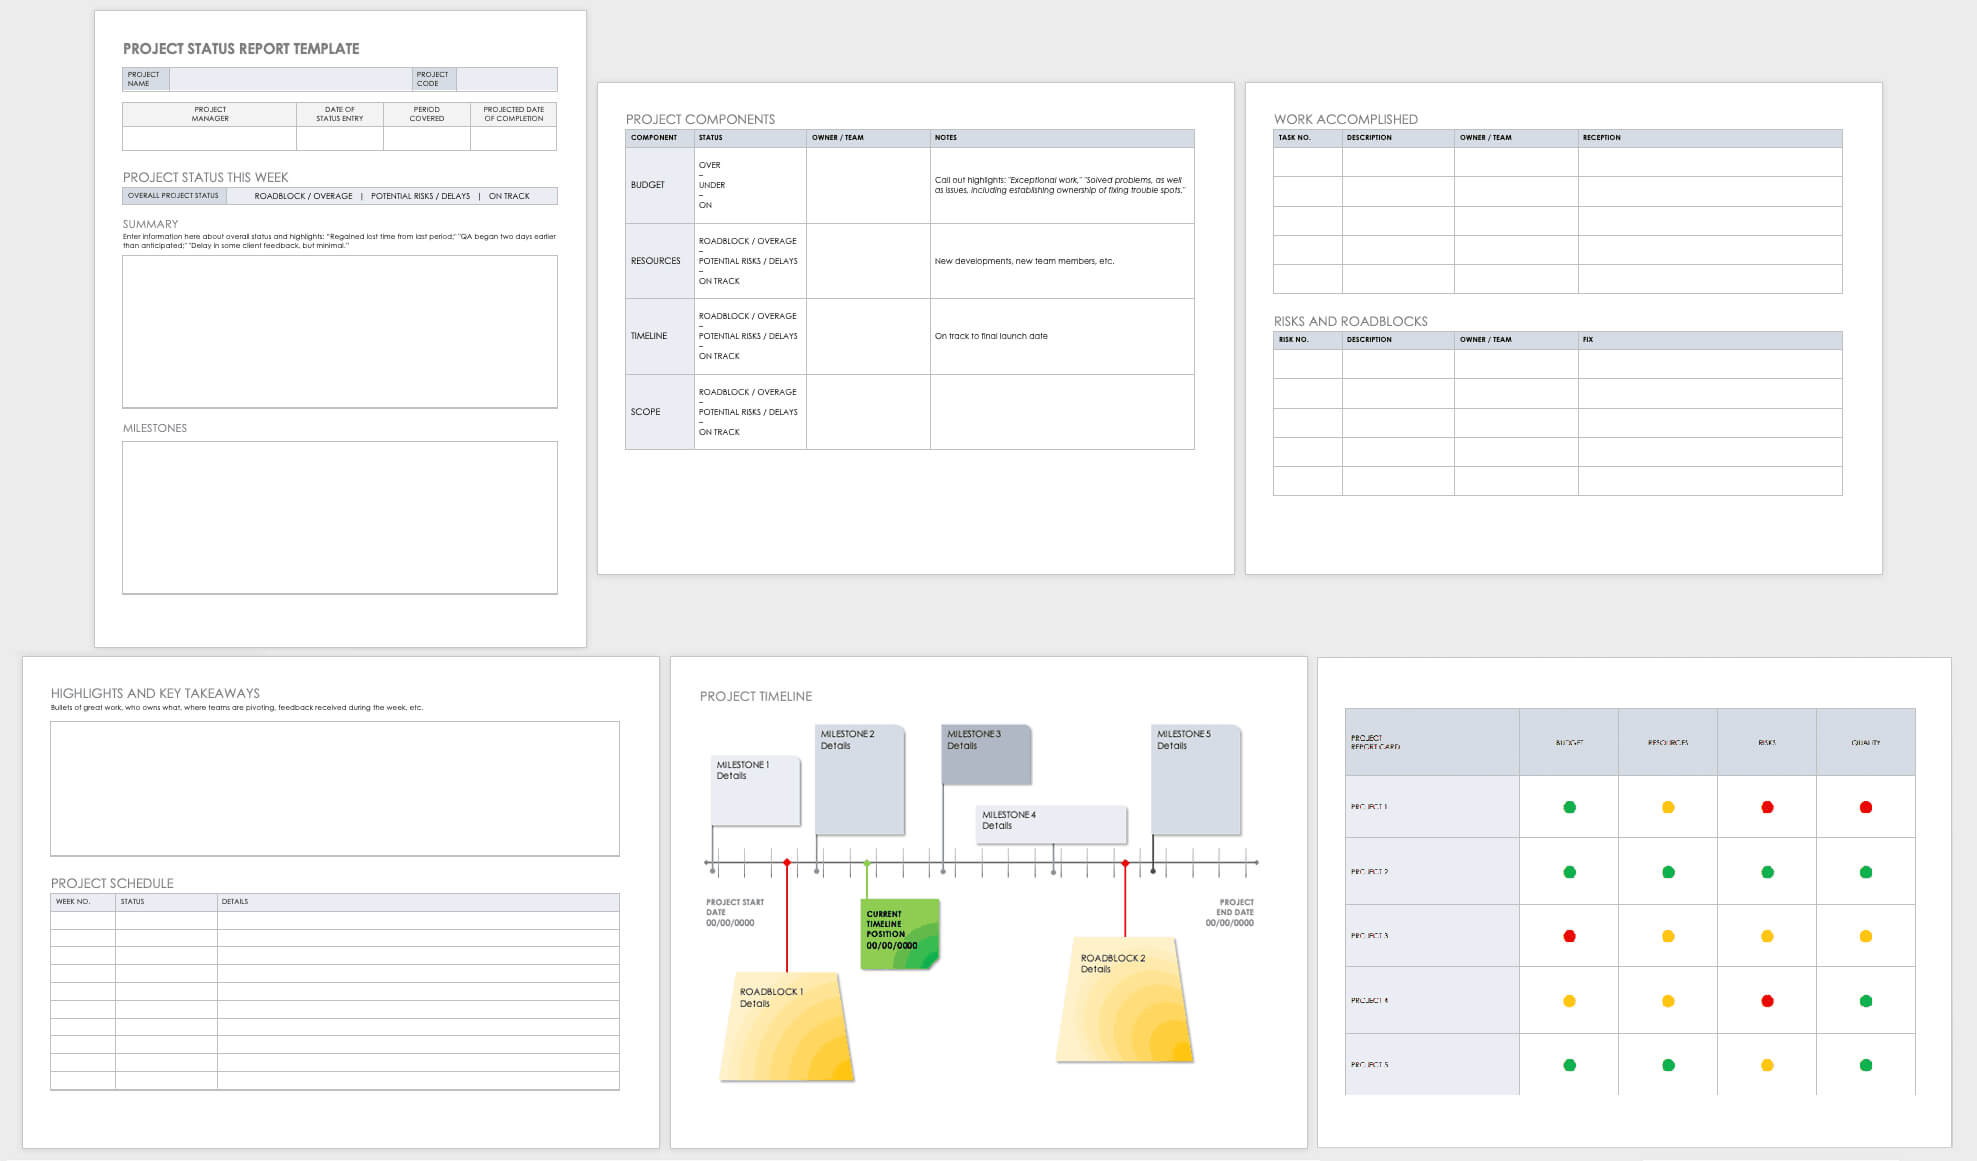 Free Project Report Templates | Smartsheet regarding Daily Project Status Report Template